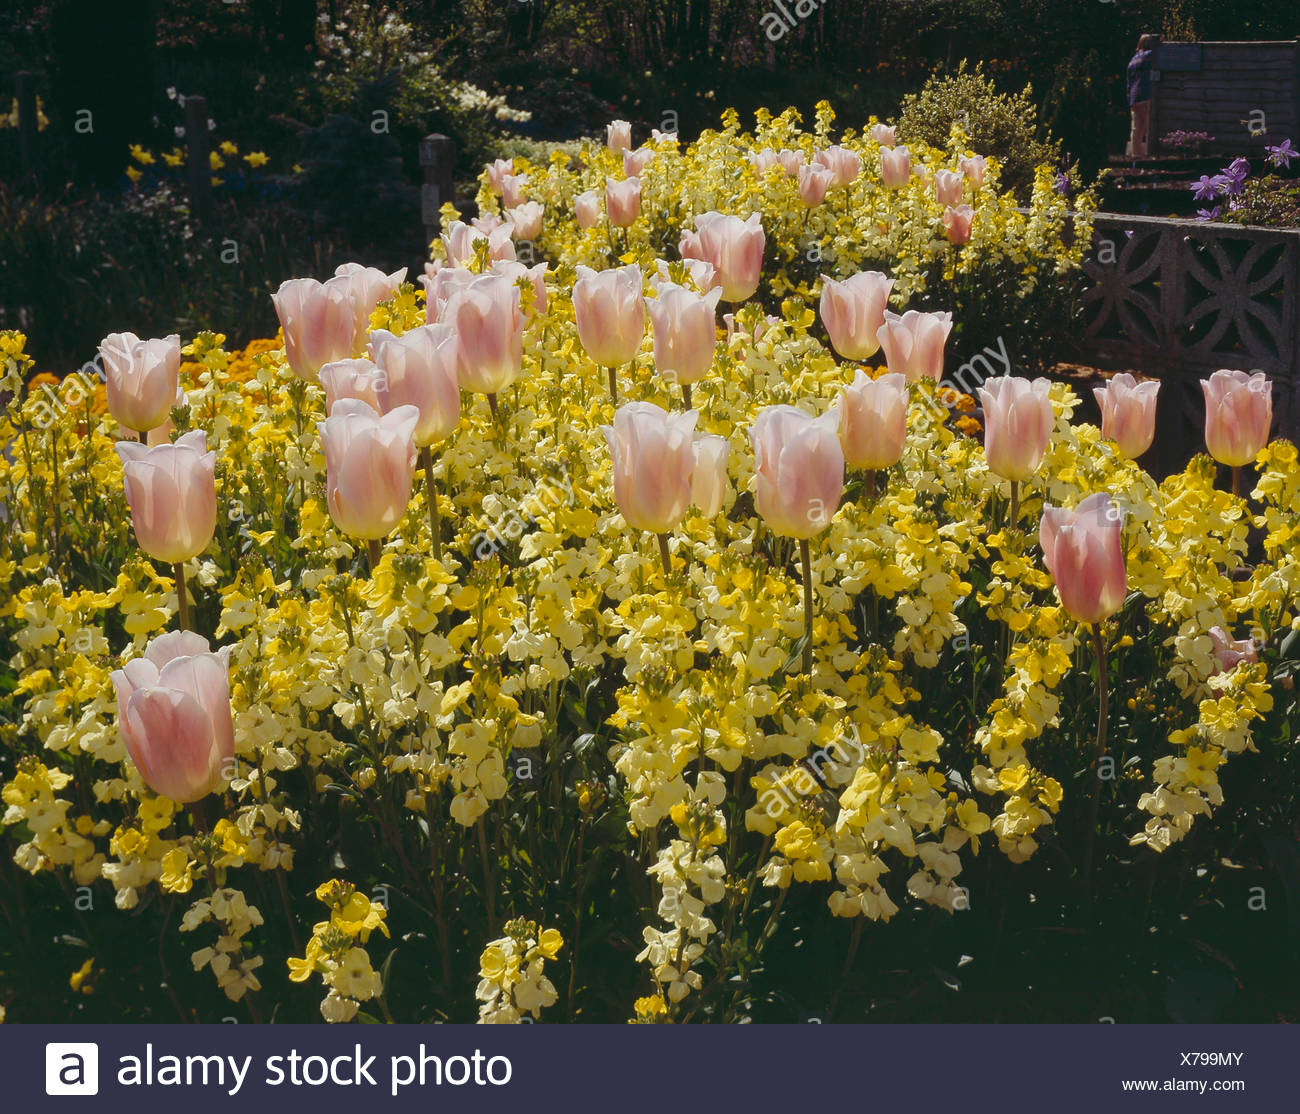 Spring Bedding - with Tulip `Apricot Beauty' and Wallflower `Primrose Monarch'   SBG082087     Photo - Stock Image